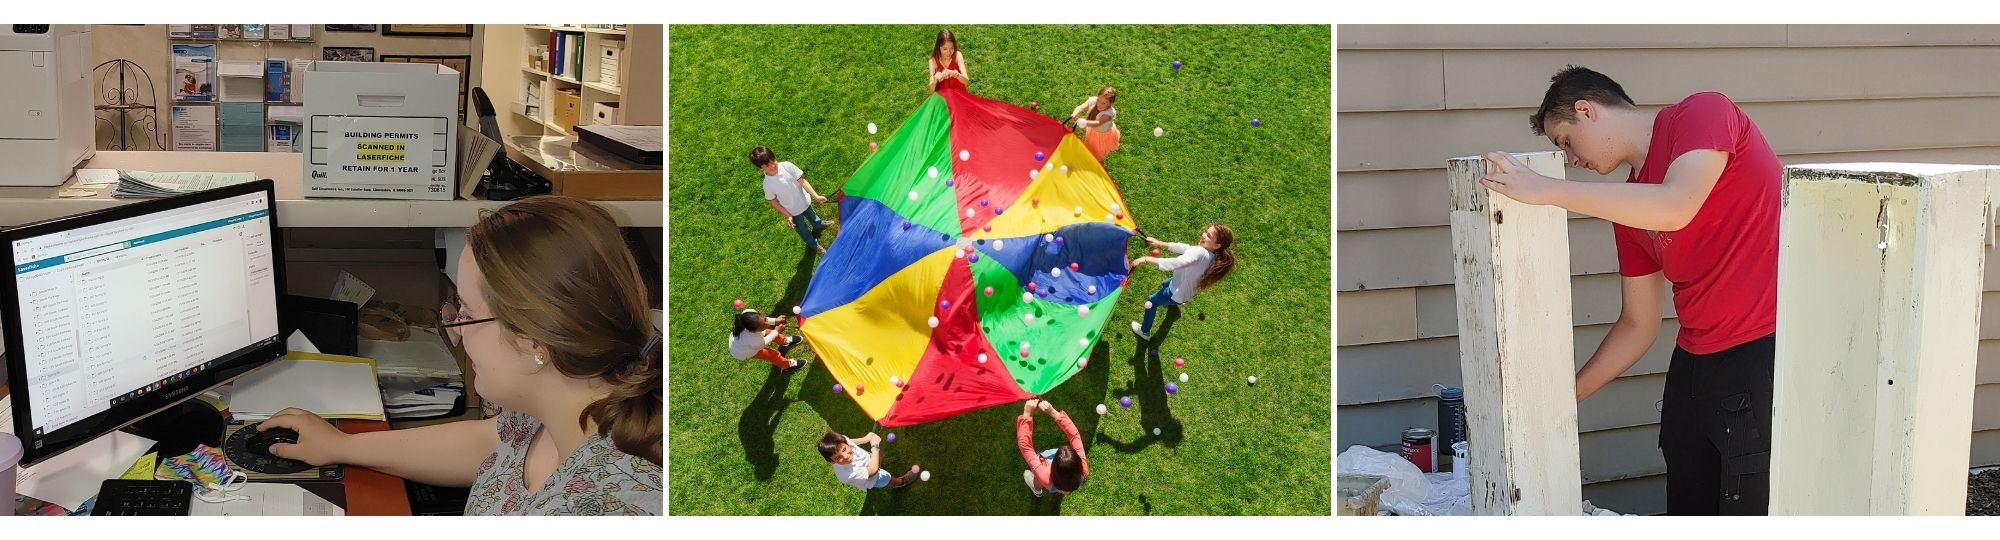 A three panel collage. Photo 1 shows a young women with brown hair and glasses working on a computer. Photo 2 is an aerial shot looking down at a group of 7 kids playing with a rainbow colored parachute. Photo 3 is of a young man in a red shirt outside painting wooden boxes white.